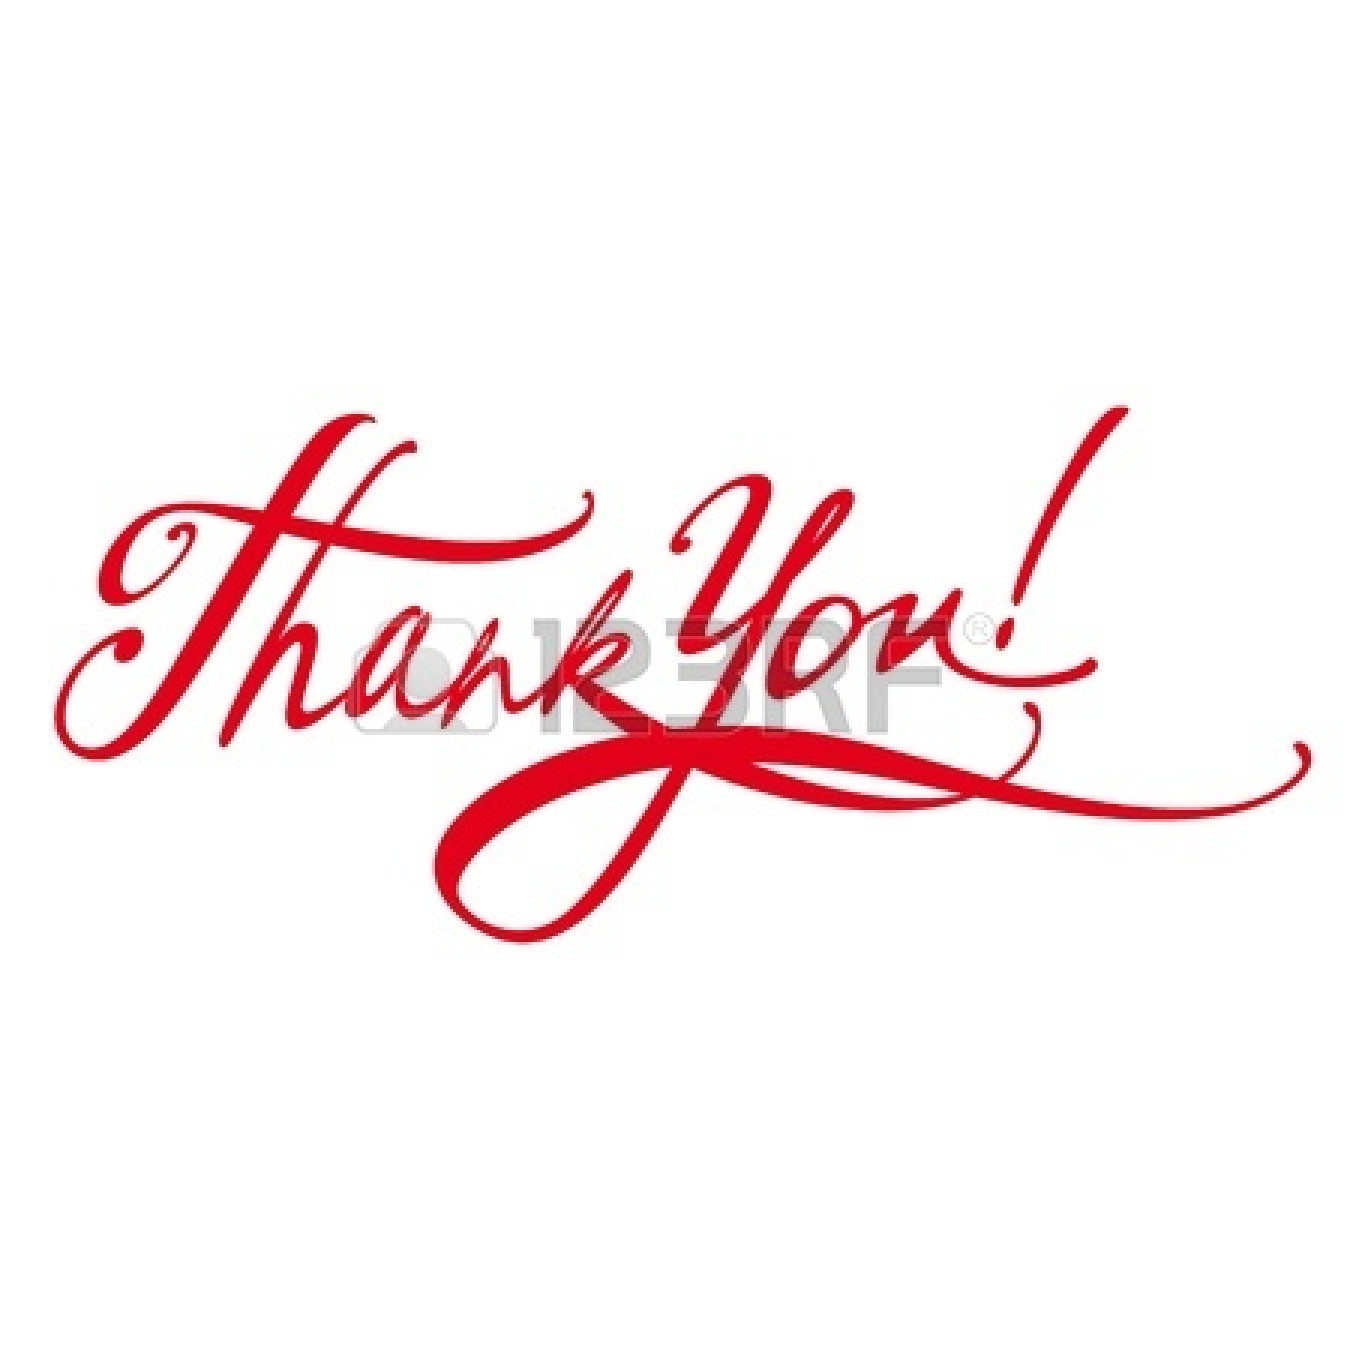 free online thank you clipart - photo #41